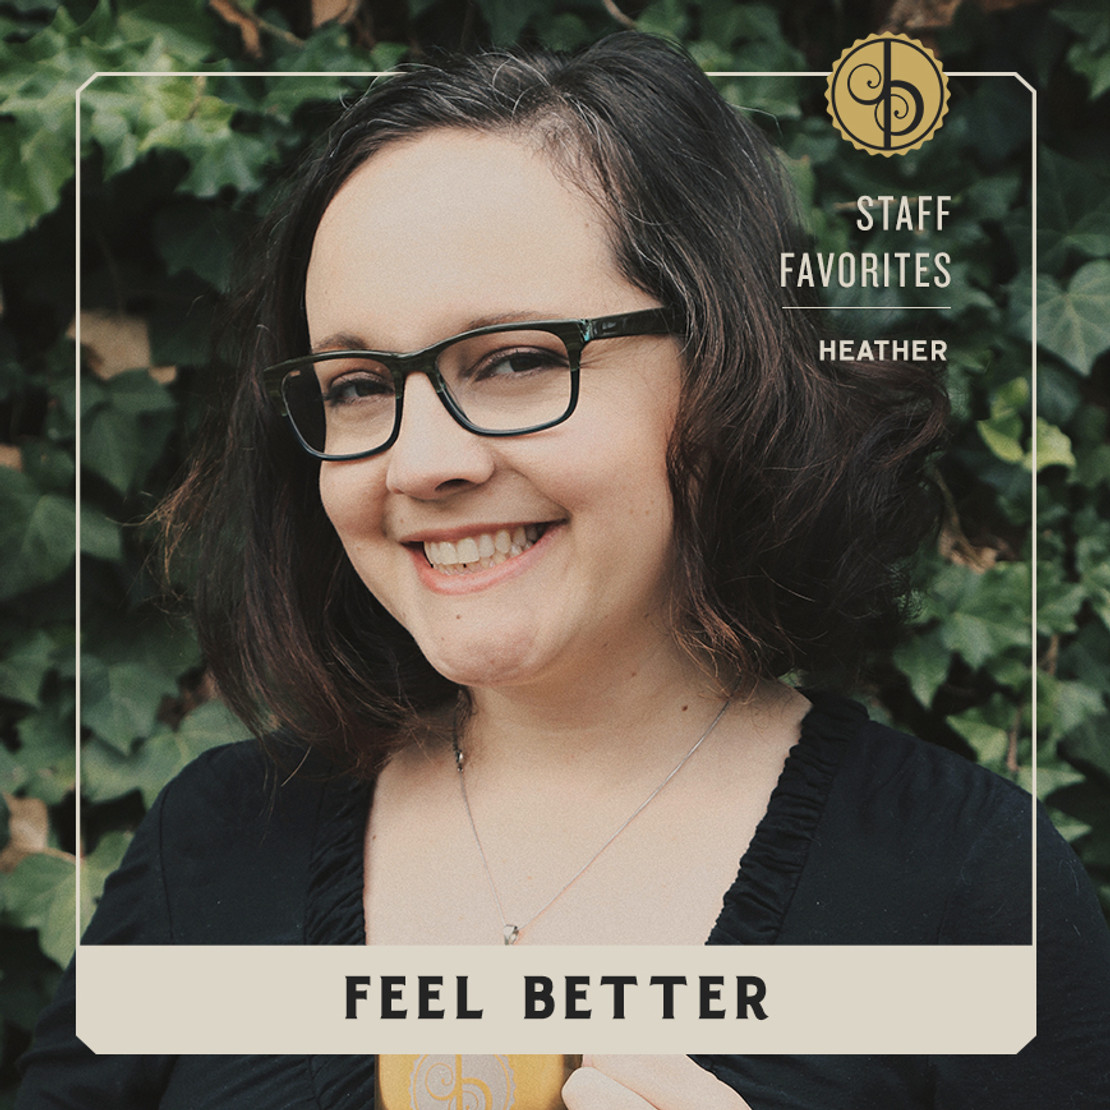 Staff Favorites: Heather & Feel Better